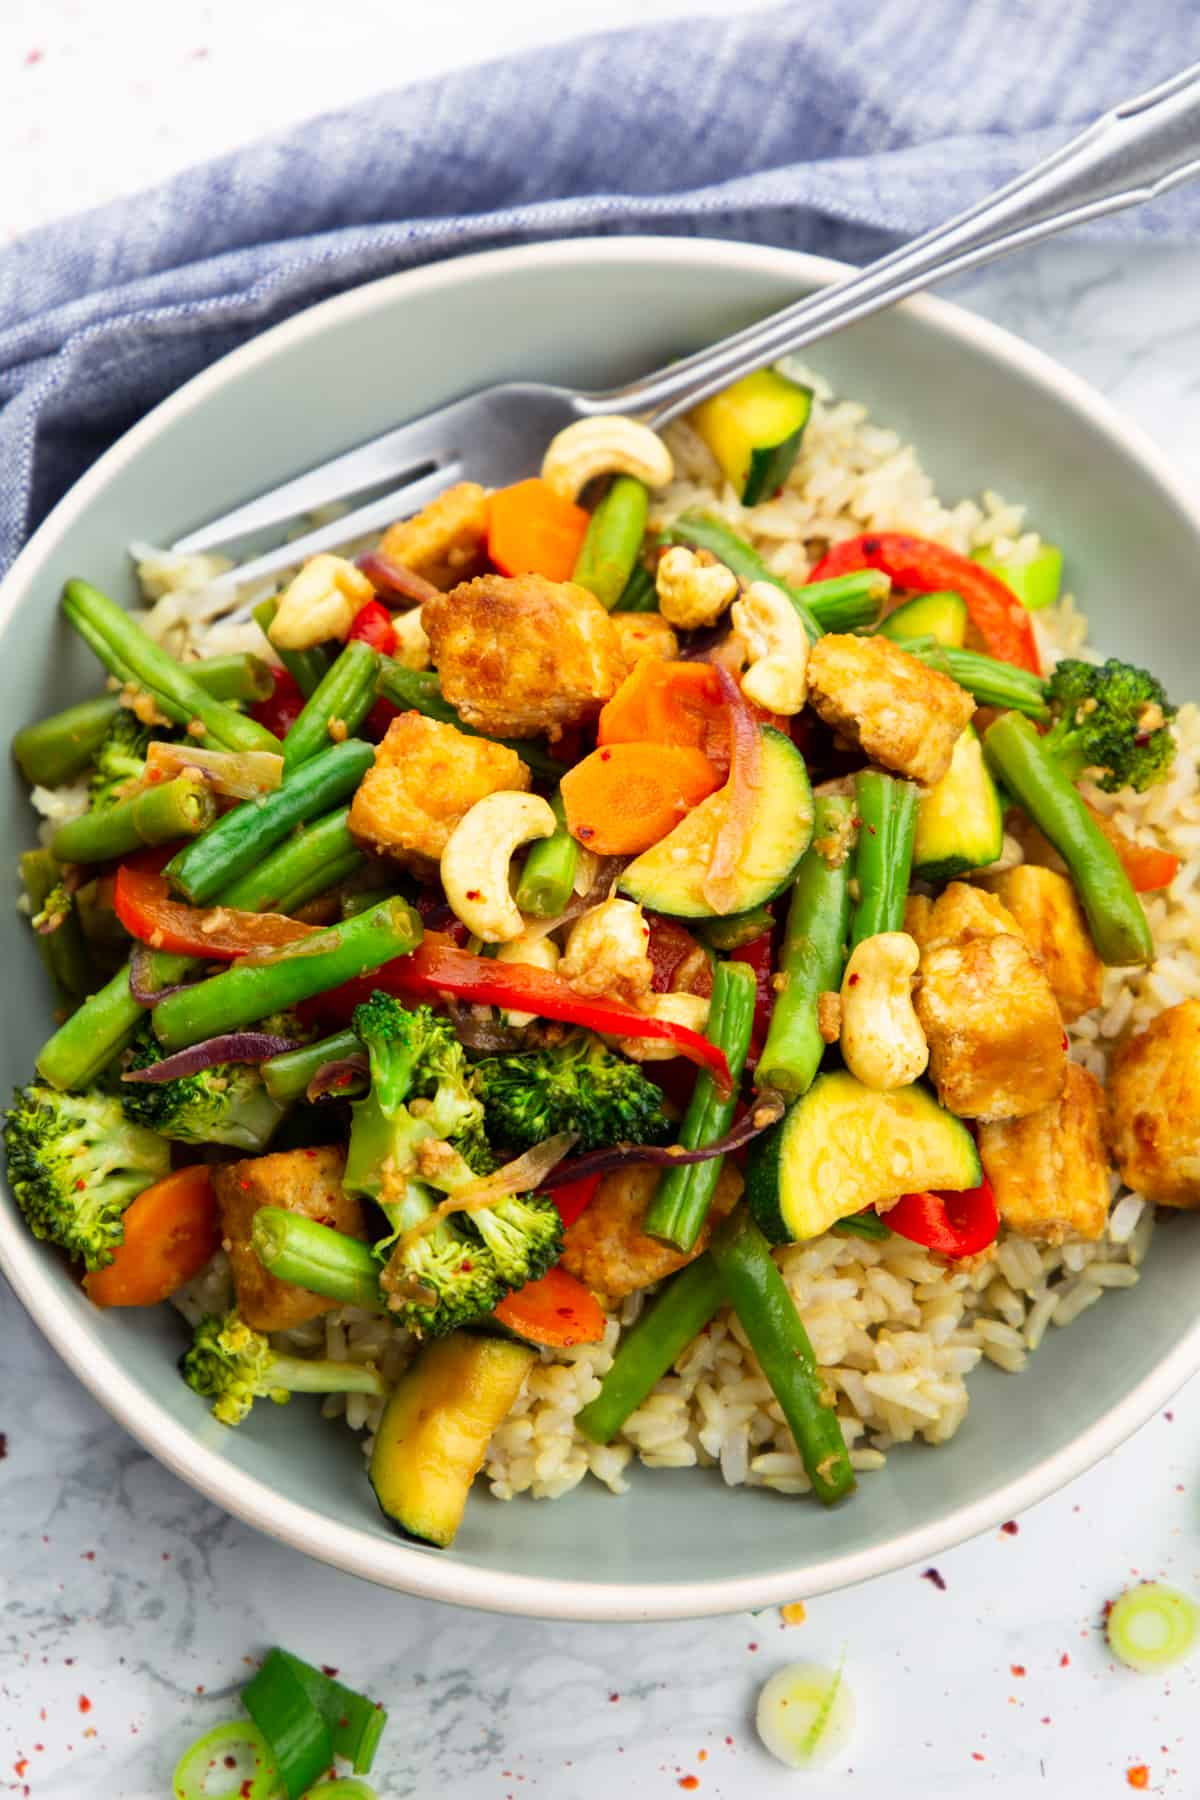 Tofu Stir Fry over brown rice in a grey plate with a fork